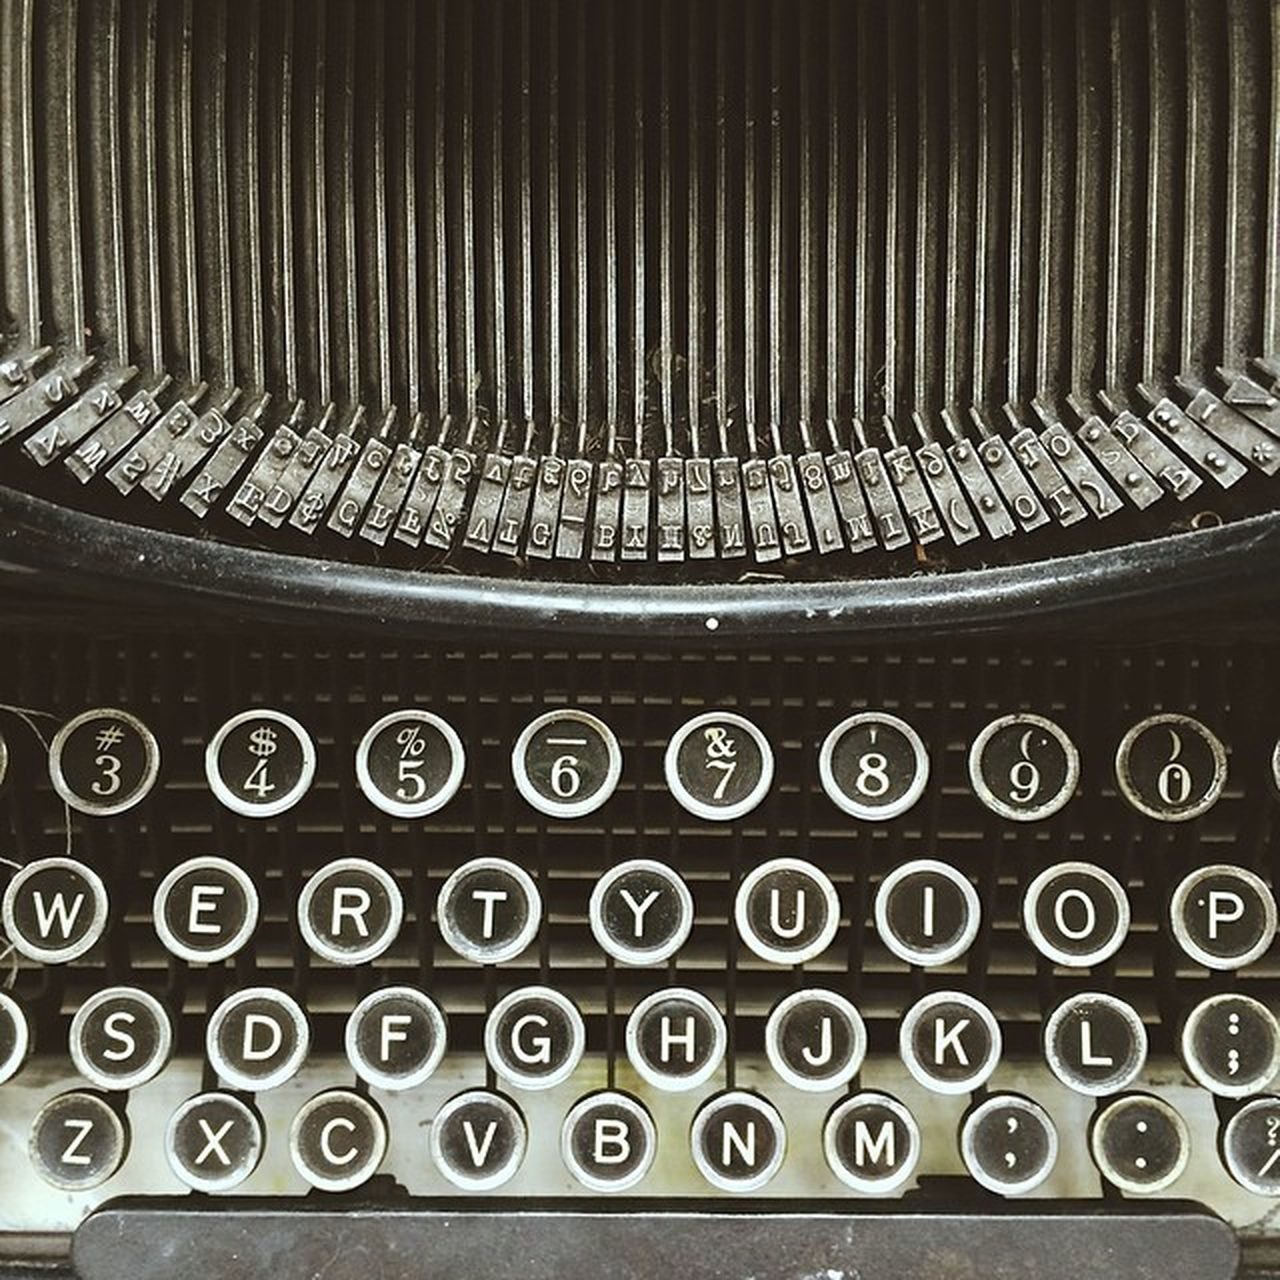 typewriter, old-fashioned, obsolete, old, retro styled, communication, antique, alphabet, text, technology, circle, number, close-up, indoors, pattern, black color, no people, backgrounds, textured, day, keyboard